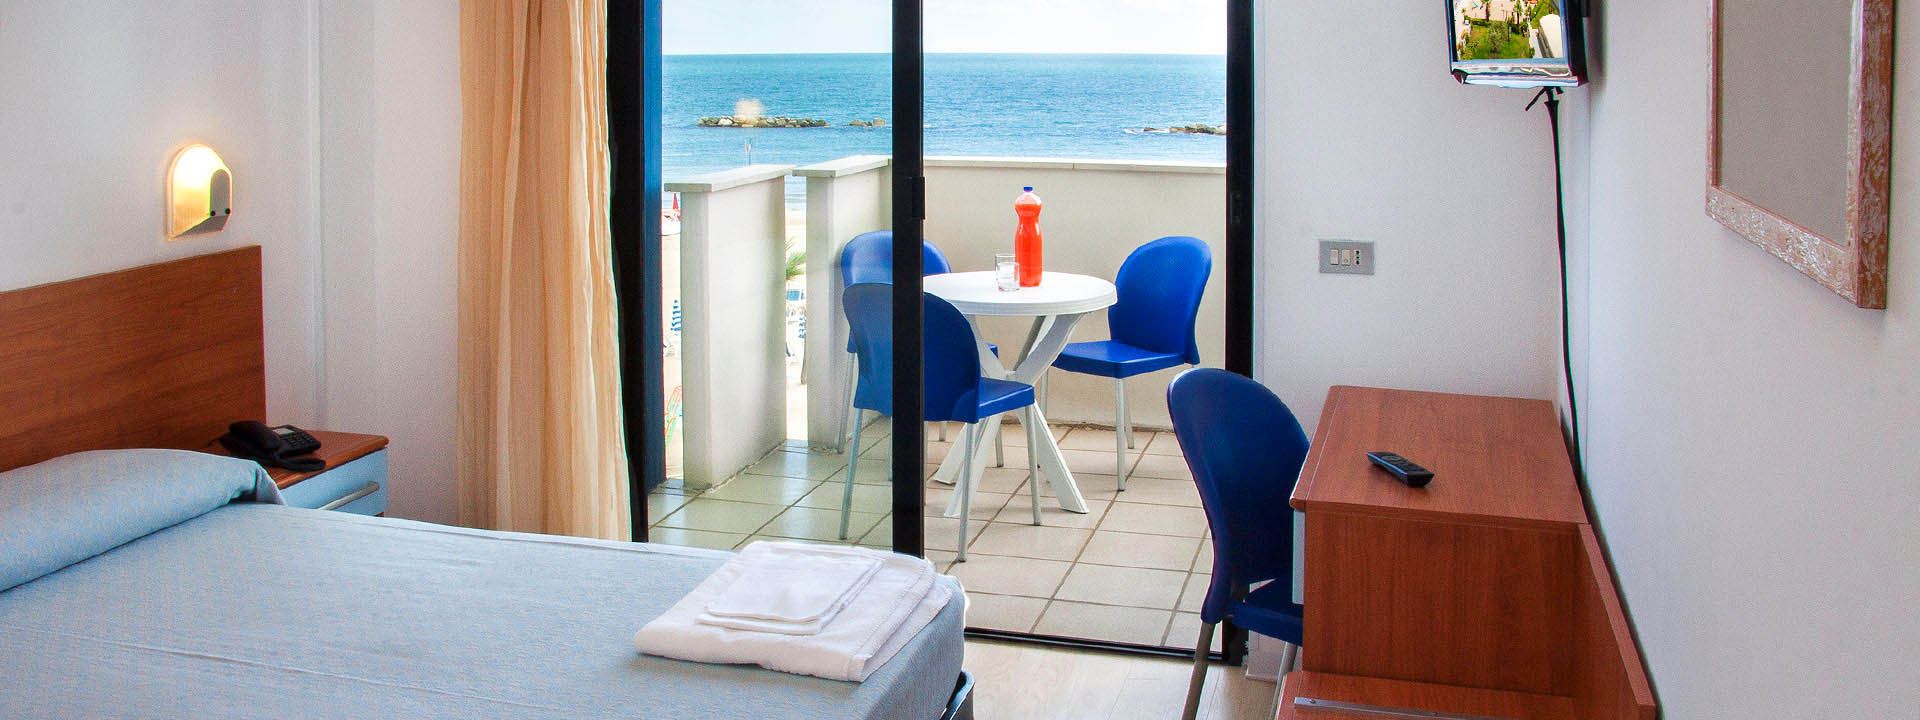 residence a san benedetto